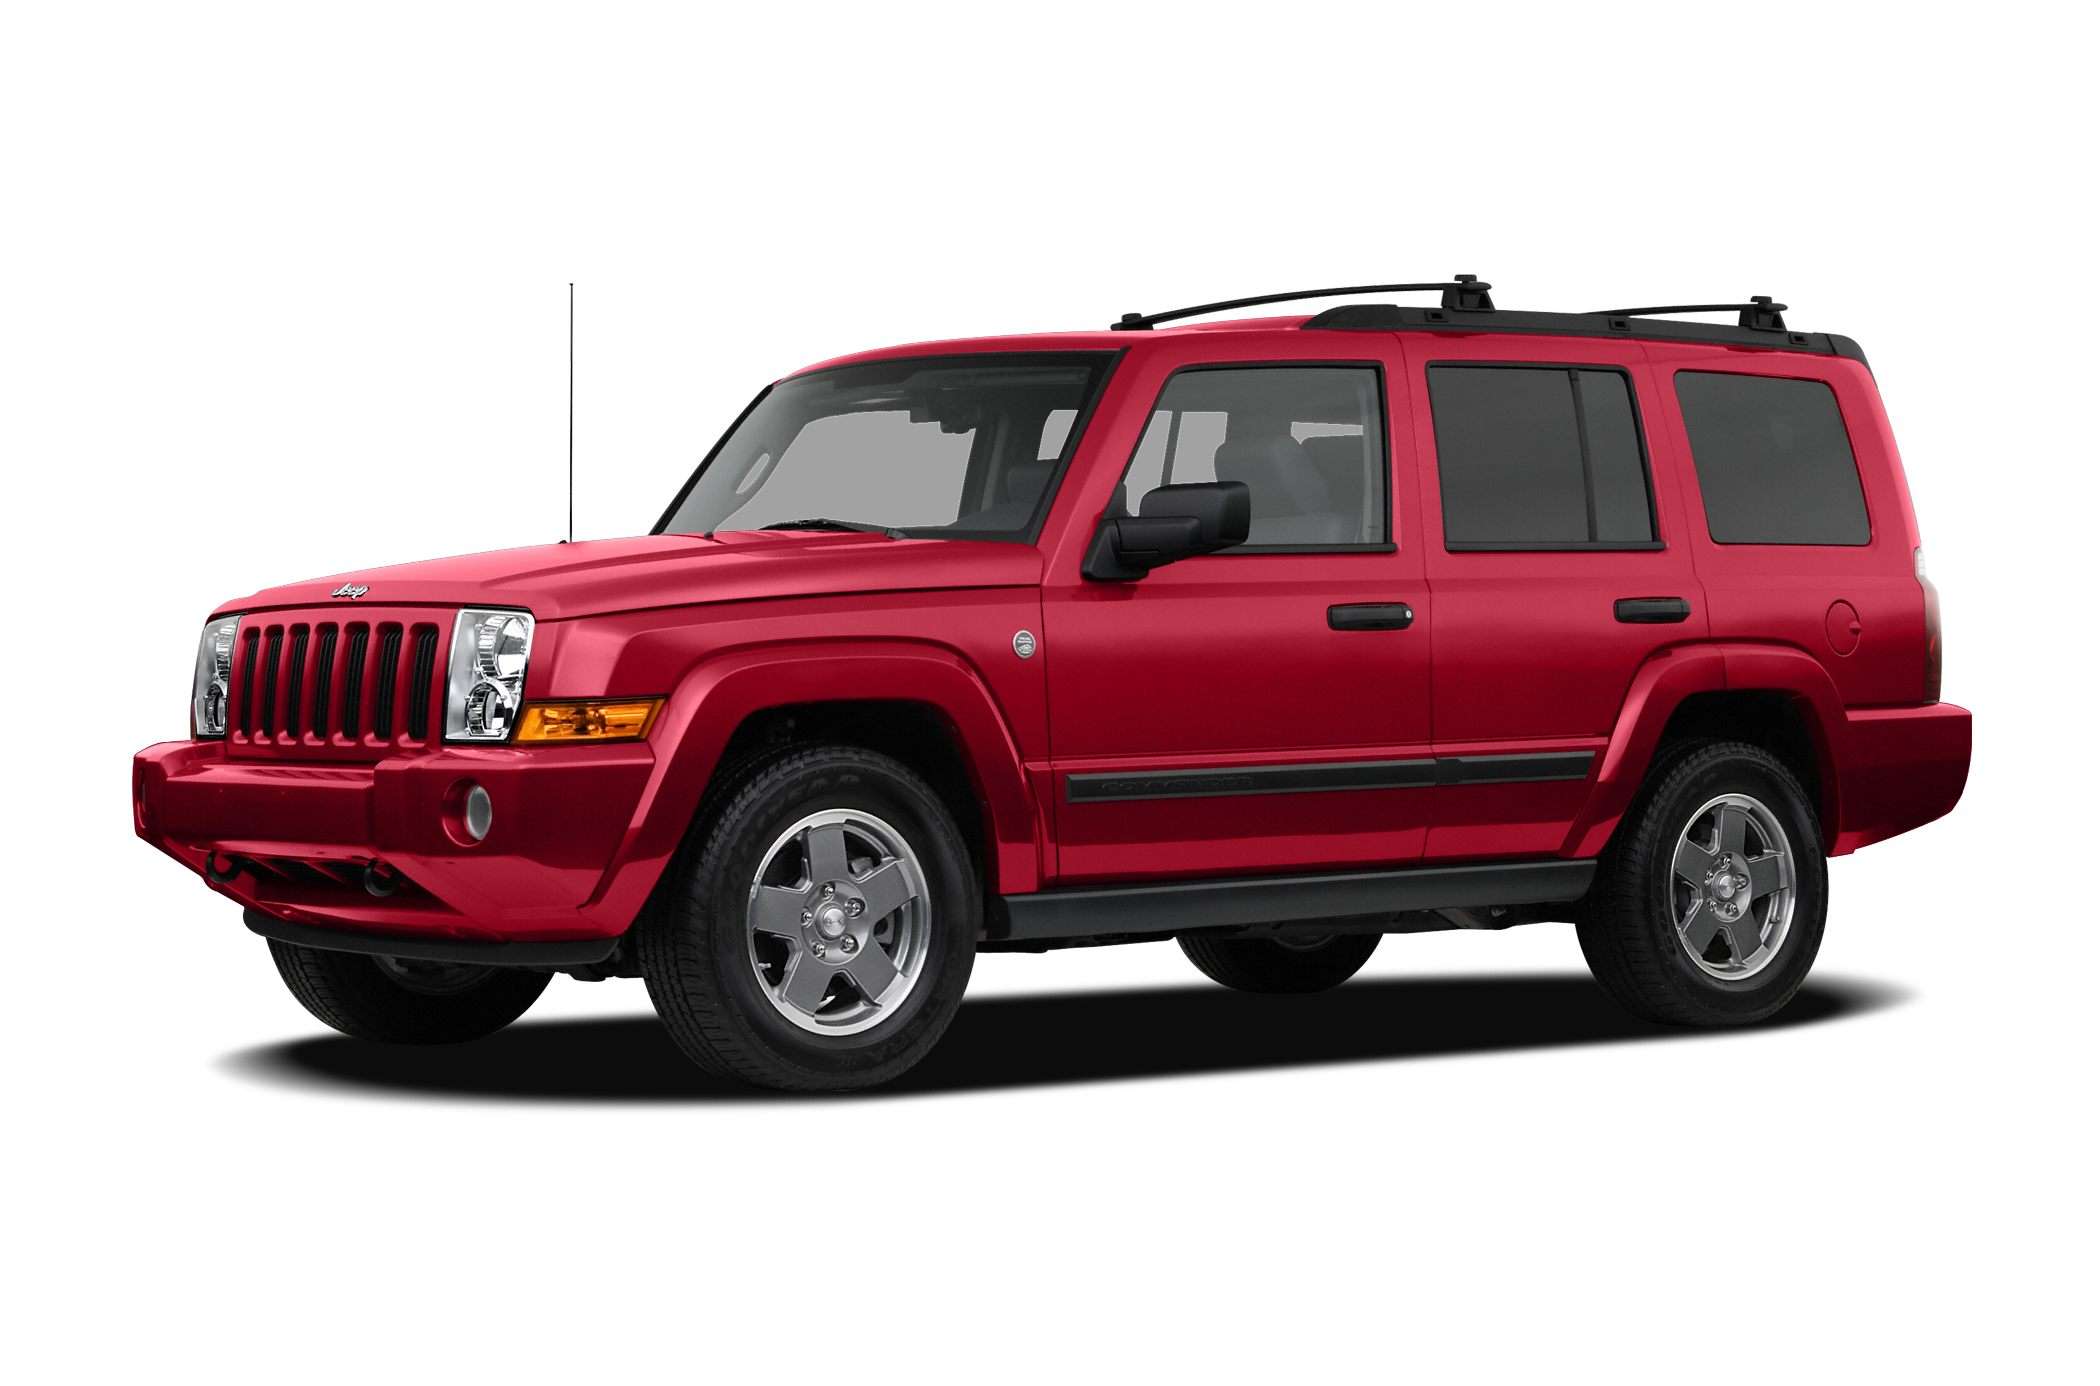 jeep commander news photos and buying information autoblog. Black Bedroom Furniture Sets. Home Design Ideas